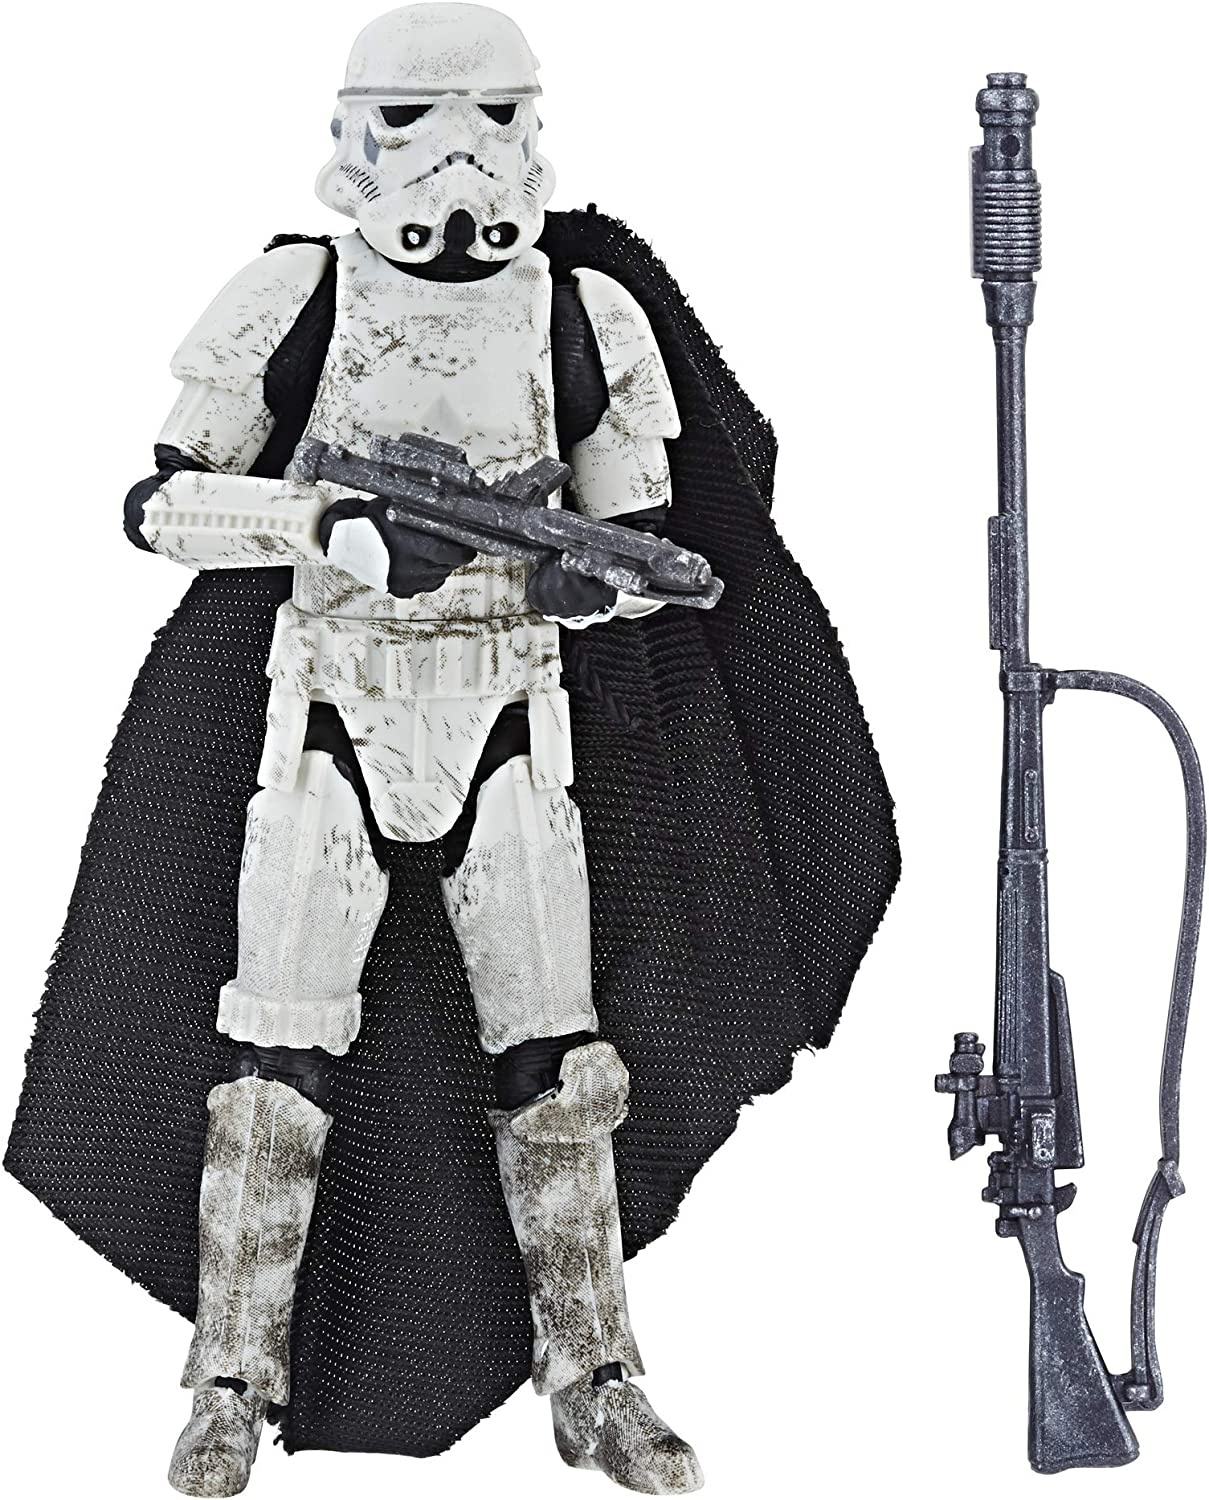 Star Wars The Vintage Collection Stormtrooper - Mimban 3.75 inch Action Figure